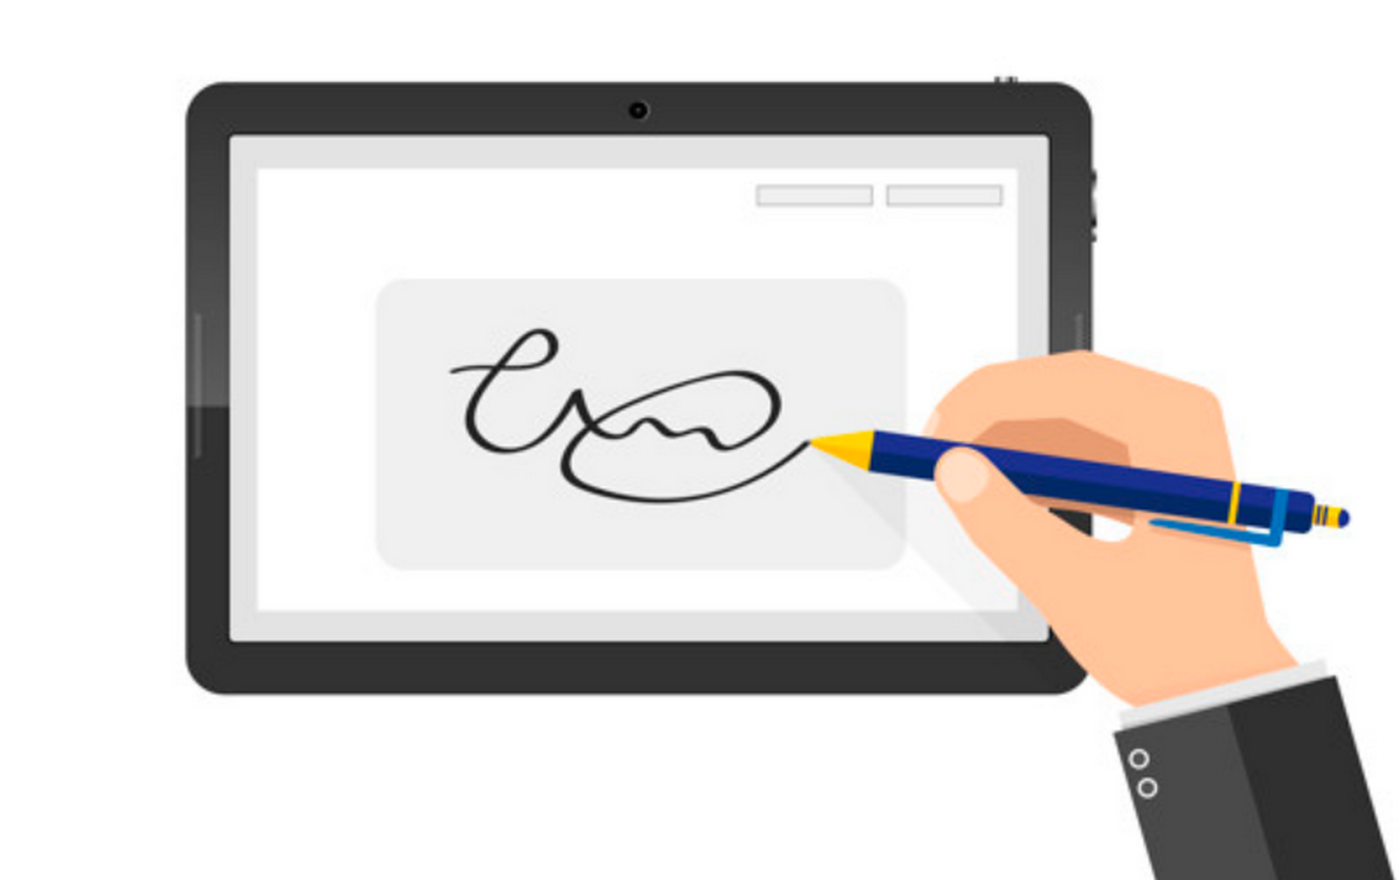 Oodrive-annonce-lacquisition-Sell-and-Sign-pour-renforcer-solution-signature-electronique